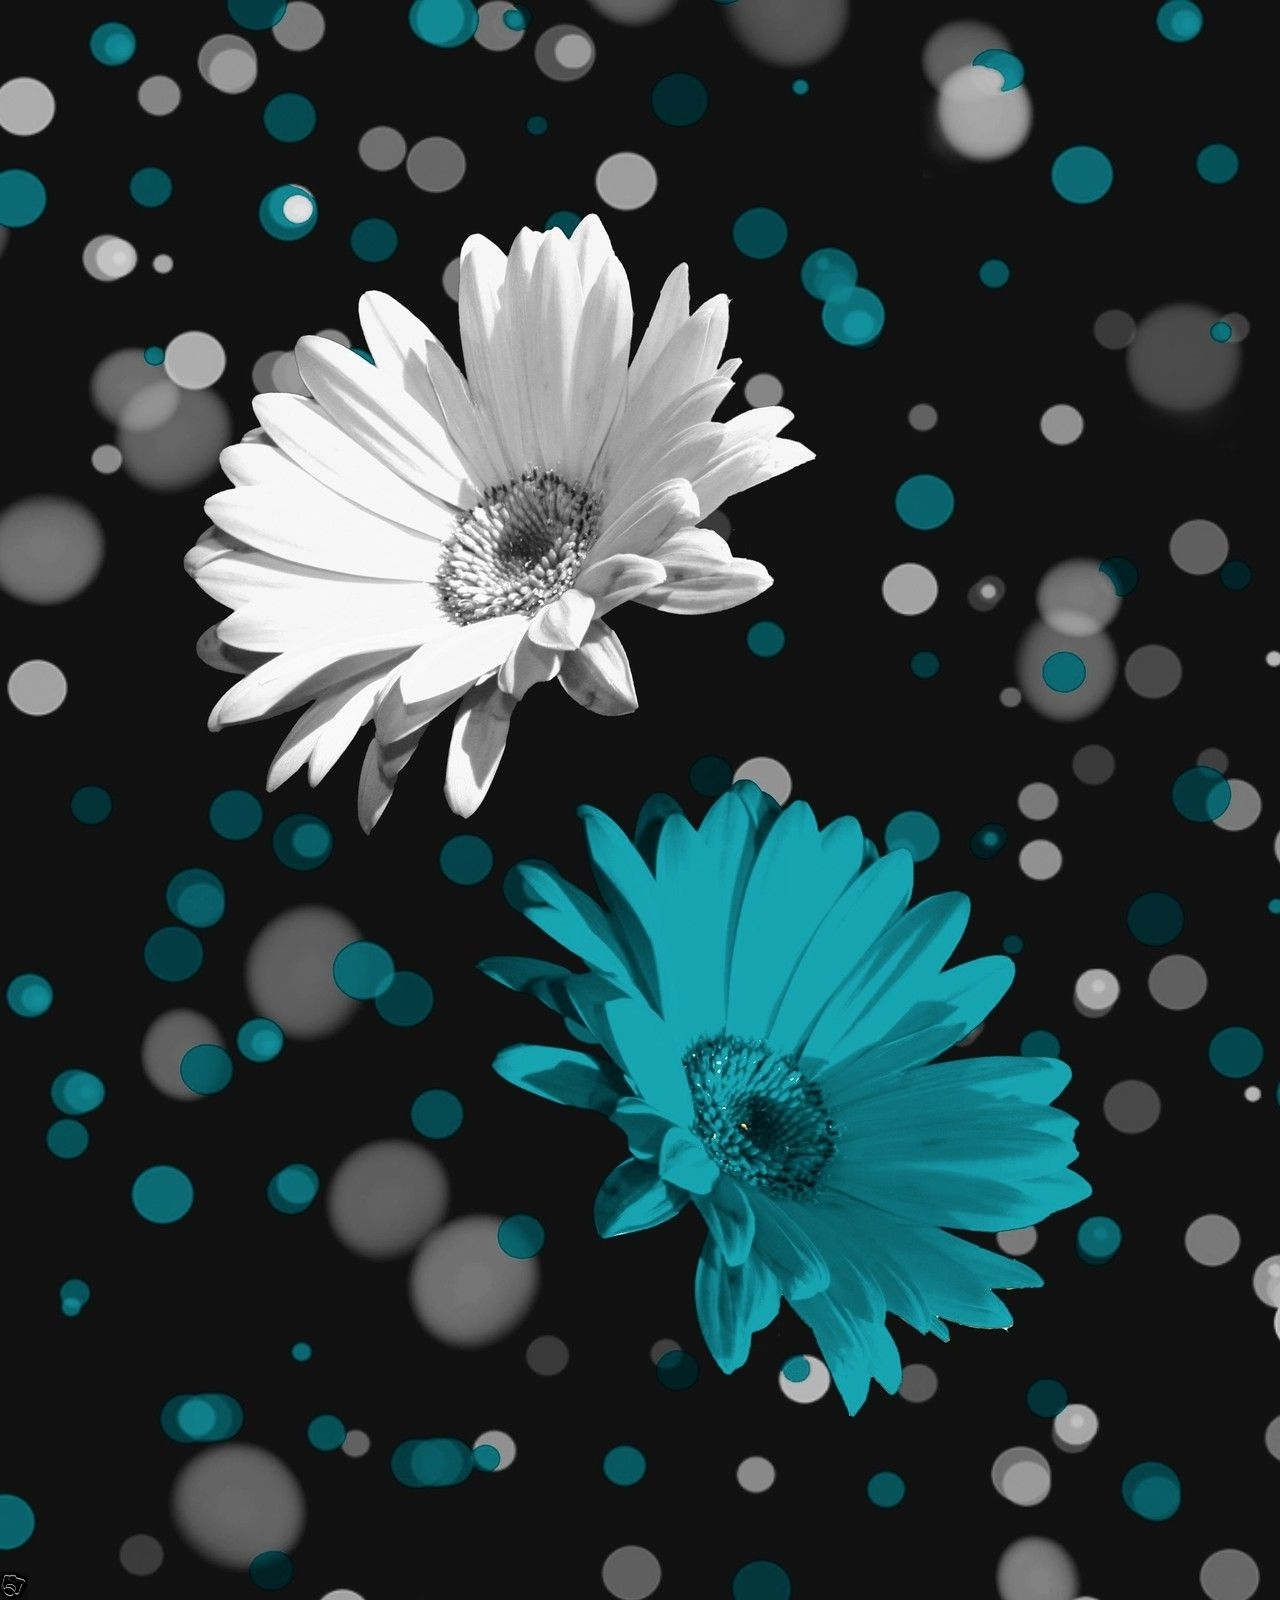 Recent Black And Teal Wall Art Intended For Black White Teal Daisy Flowers Wall Art Home Decor Matted Picture (Gallery 6 of 15)